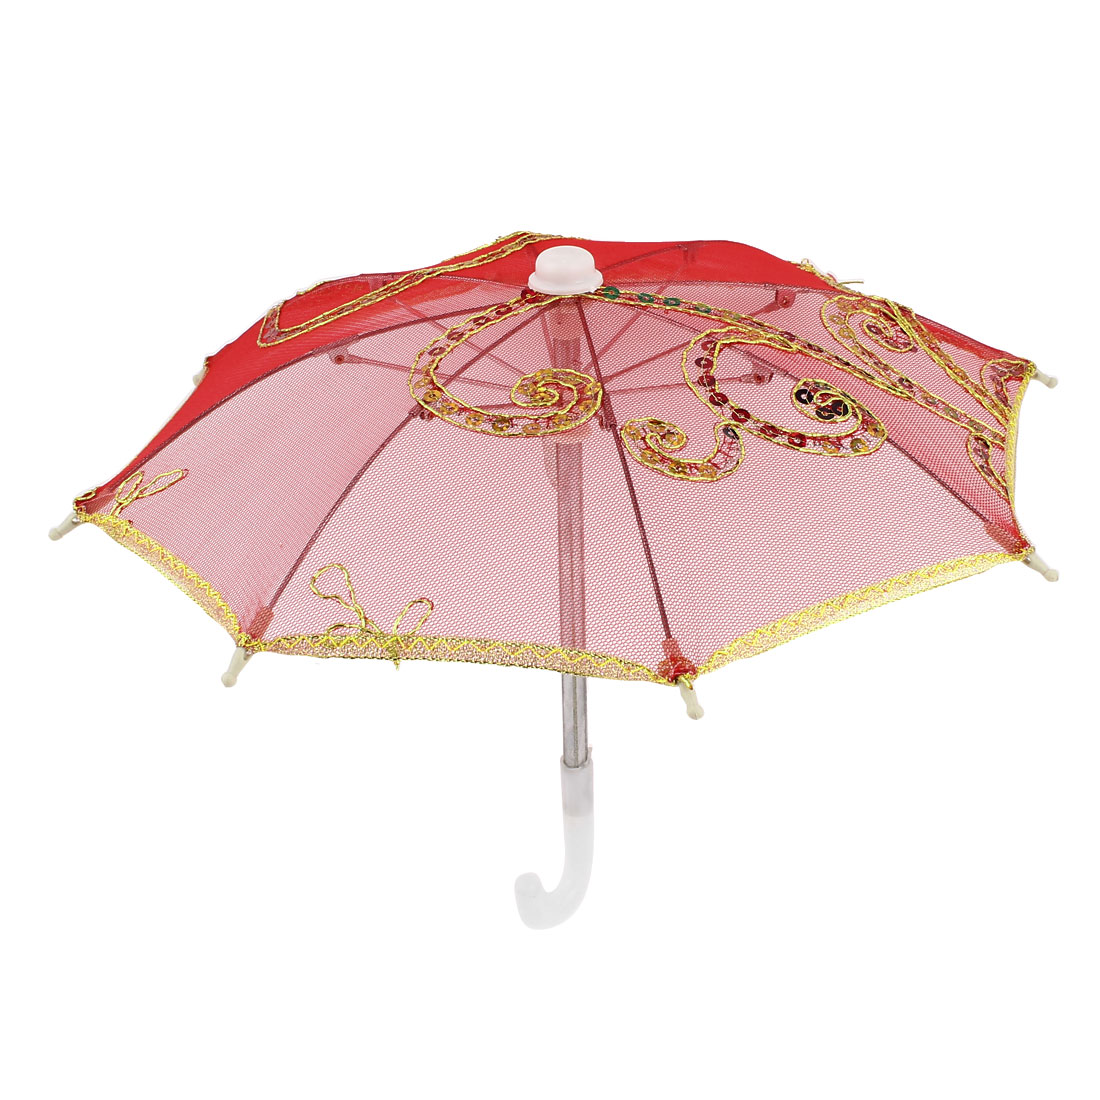 Home Decor Gold Tone Embroidery Flower Foldable Mini Parasol Umbrella Red